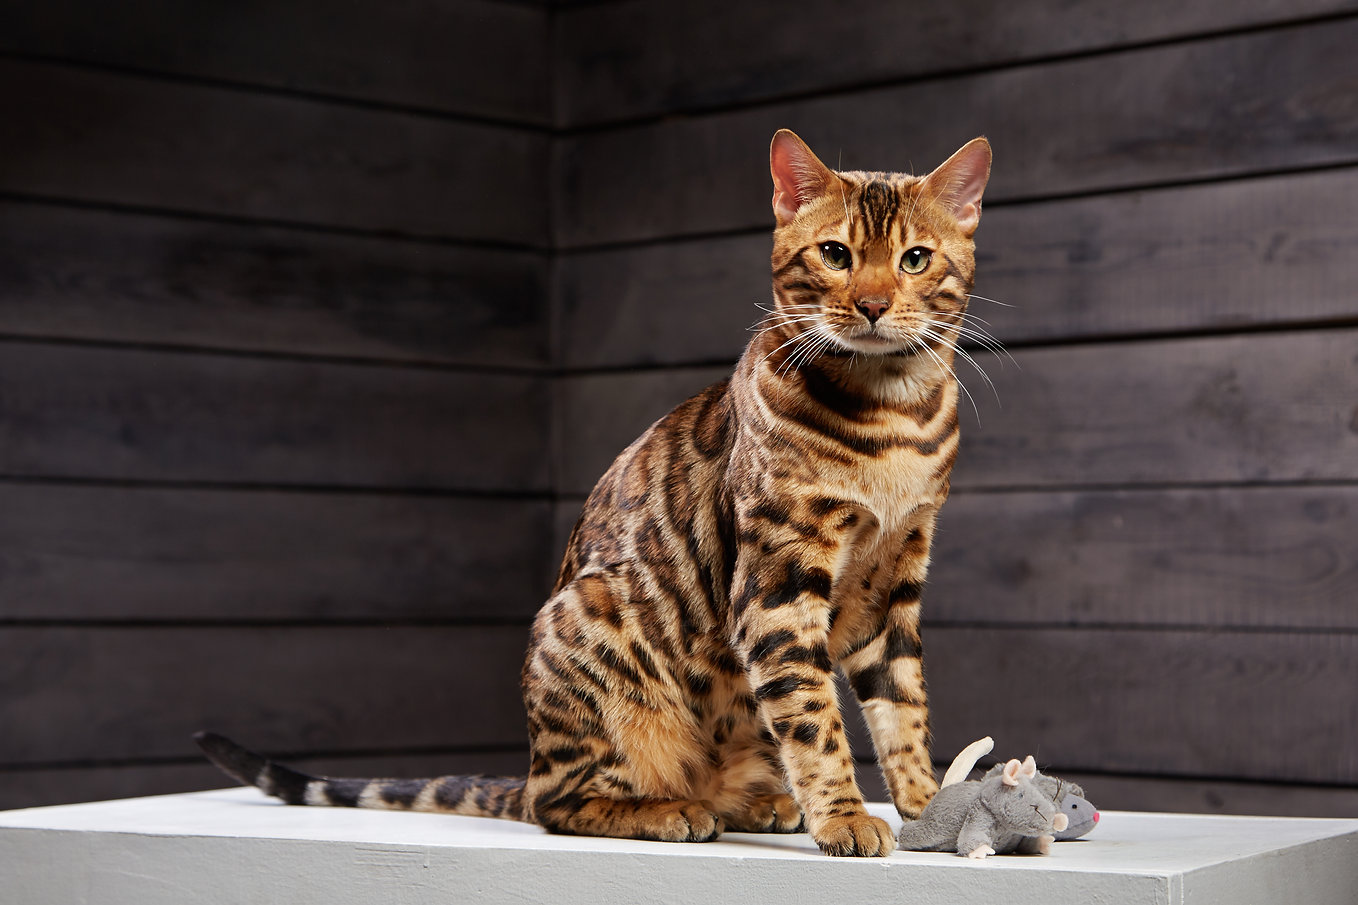 beautiful cat of Bengali breed. Young do